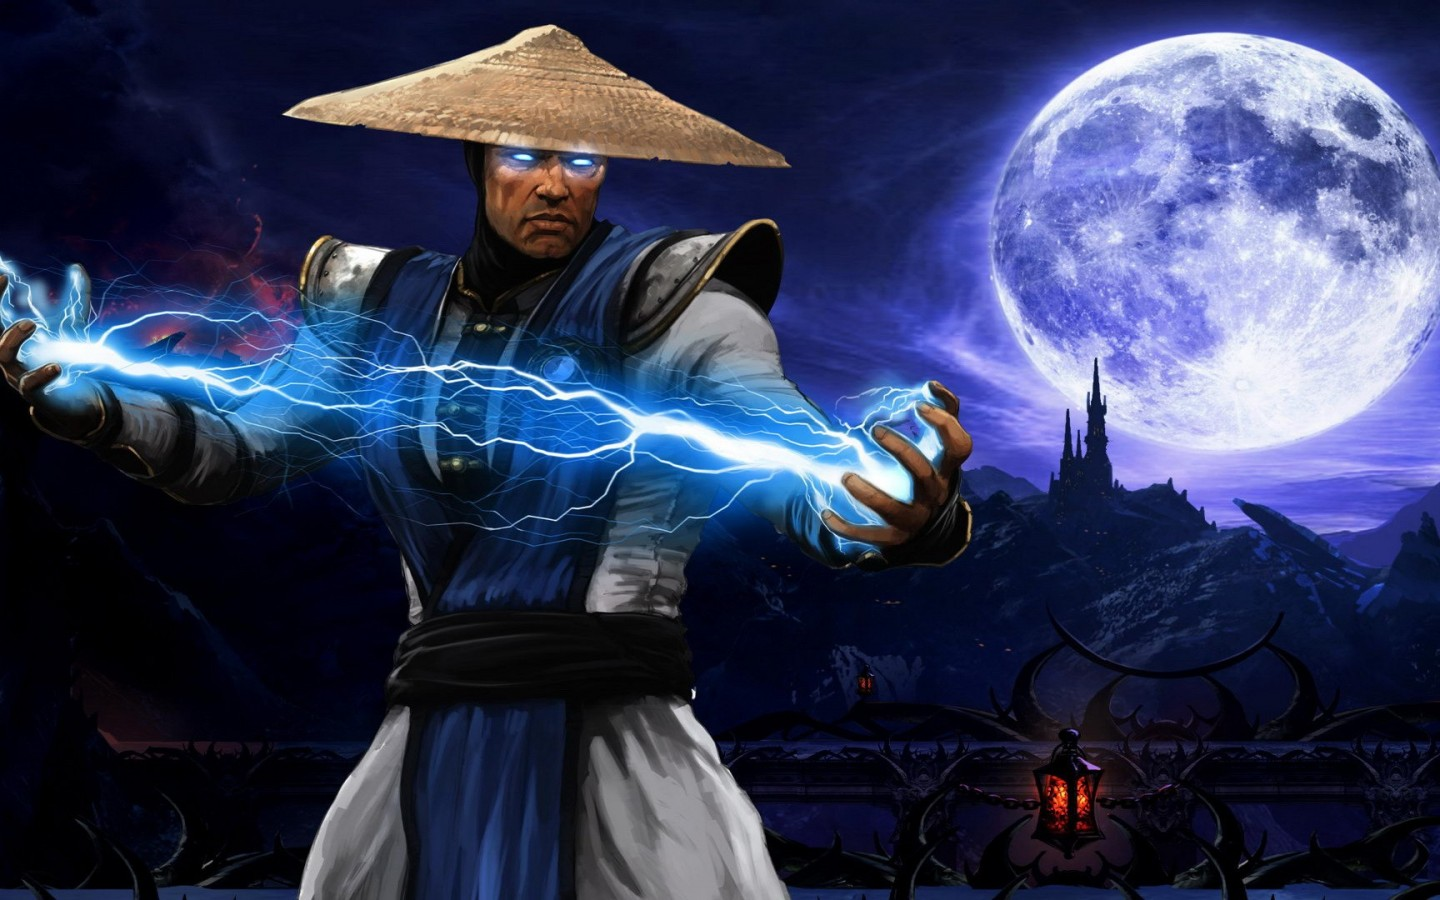 Raiden returns in Mortal Kombat X